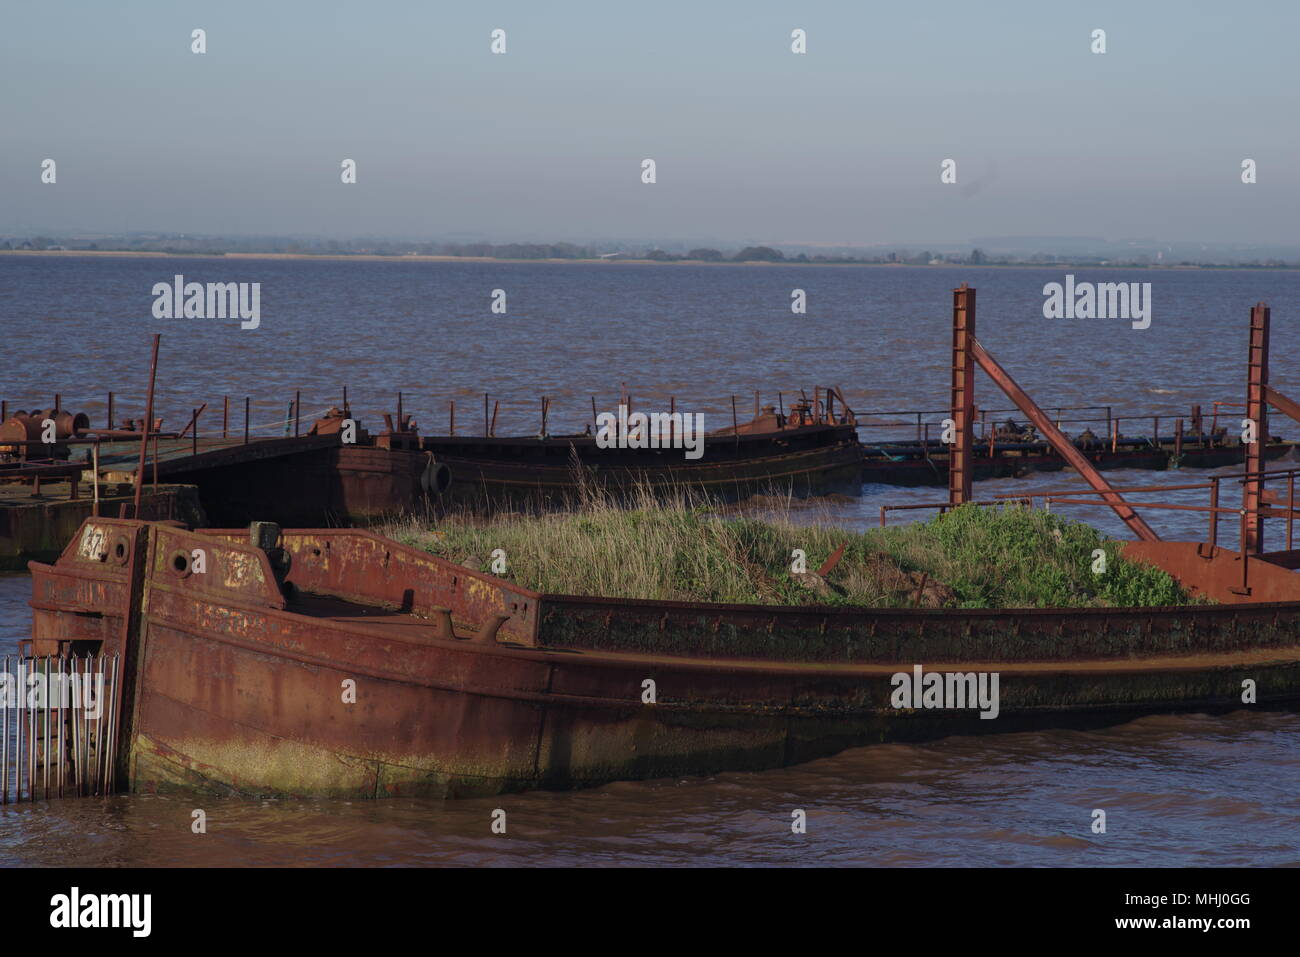 Rotting, abandoned, derelict barges at Paull, near Hull, UK - Stock Image